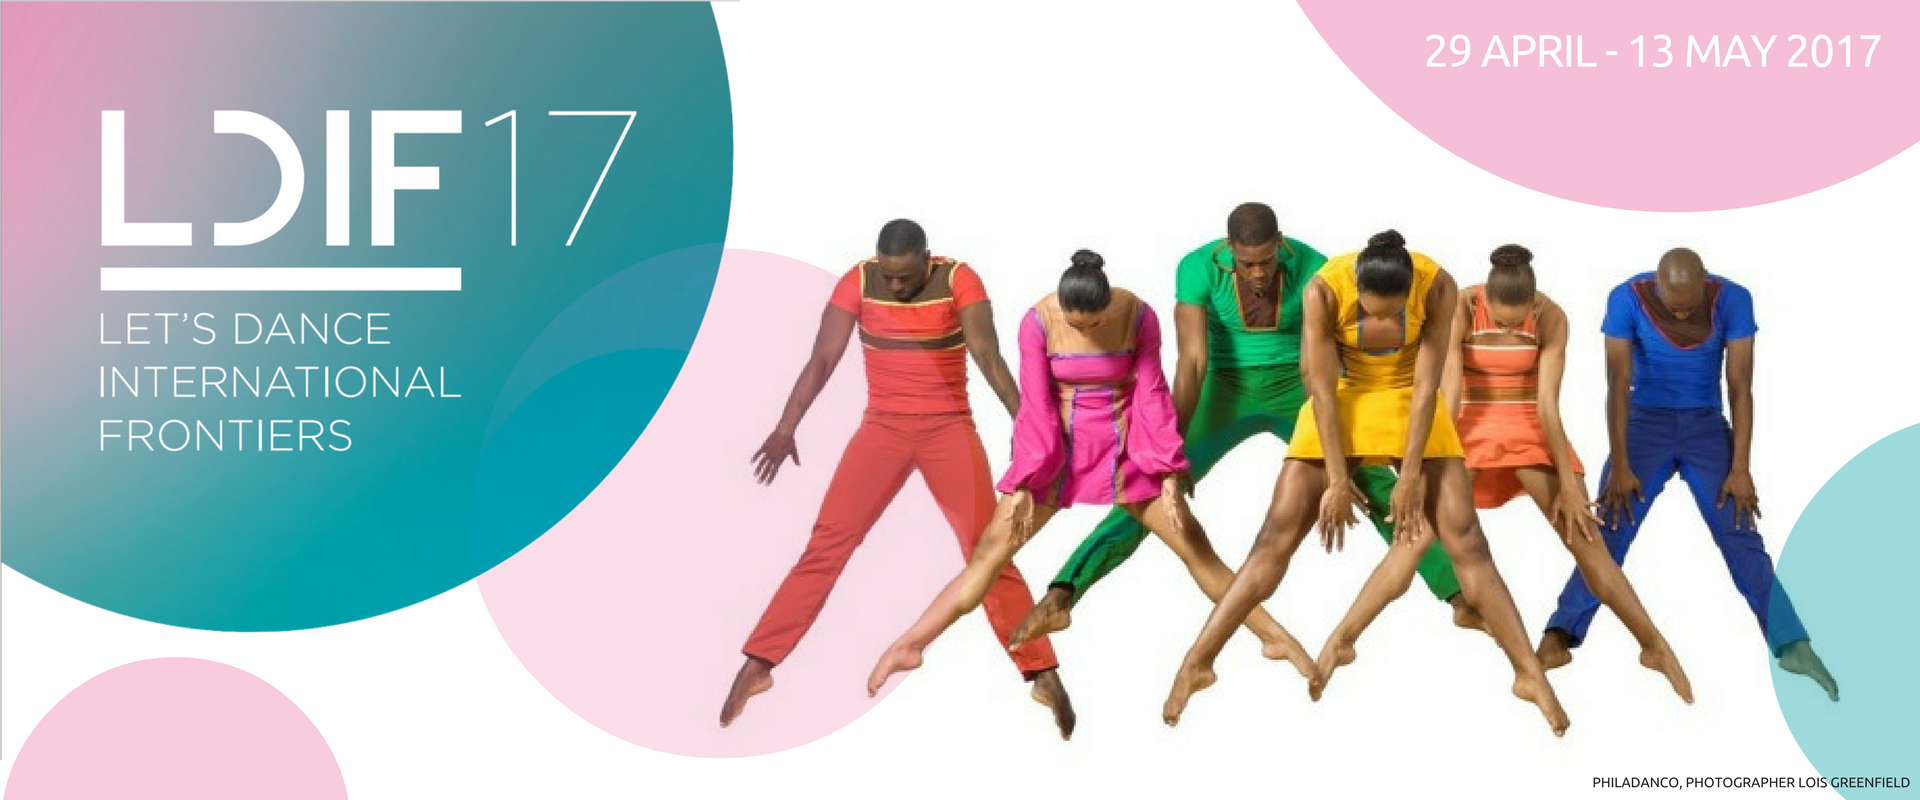 Let's Dance International Frontiers 2017 — Page Banner